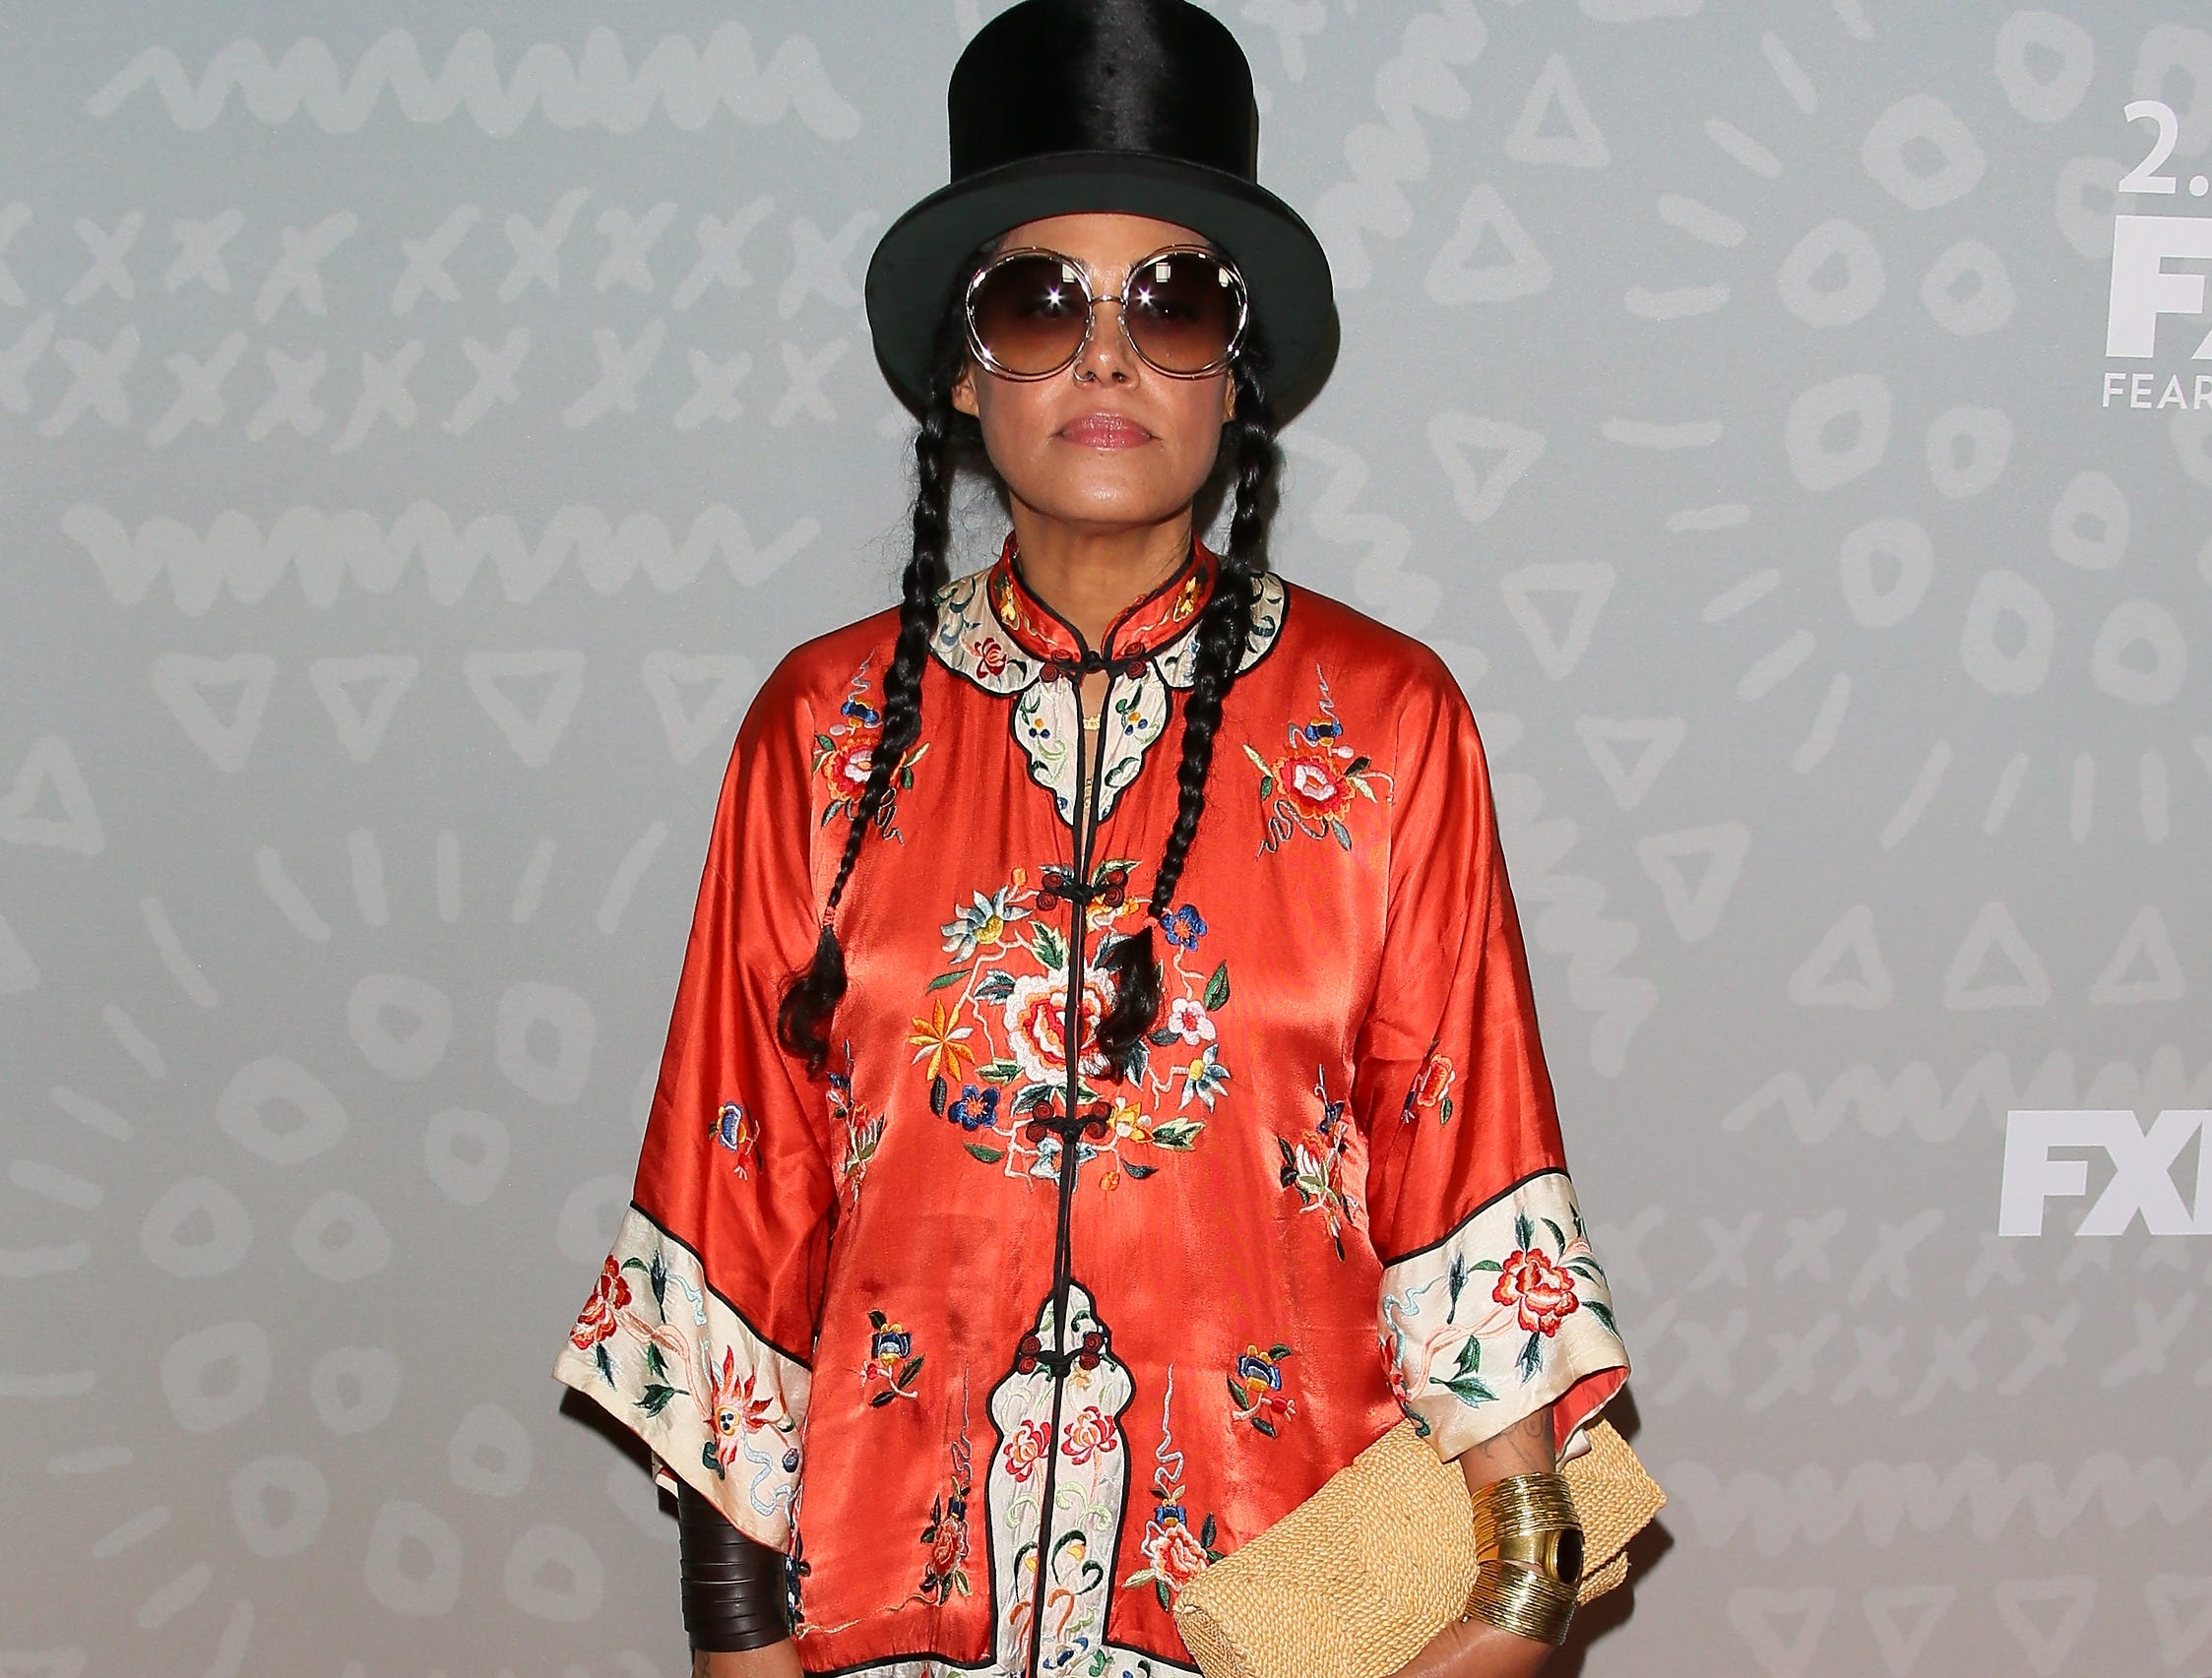 SANTA MONICA, CALIFORNIA - FEBRUARY 26: Cree Summer attends the Los Angeles premiere of FX's 'Better Things' Season 3 held at The Eli and Edythe Broad Stage on February 26, 2019 in Santa Monica, California.  (Photo by JB Lacroix/Getty Images) ORG XMIT: 775294806 ORIG FILE ID: 1127664325